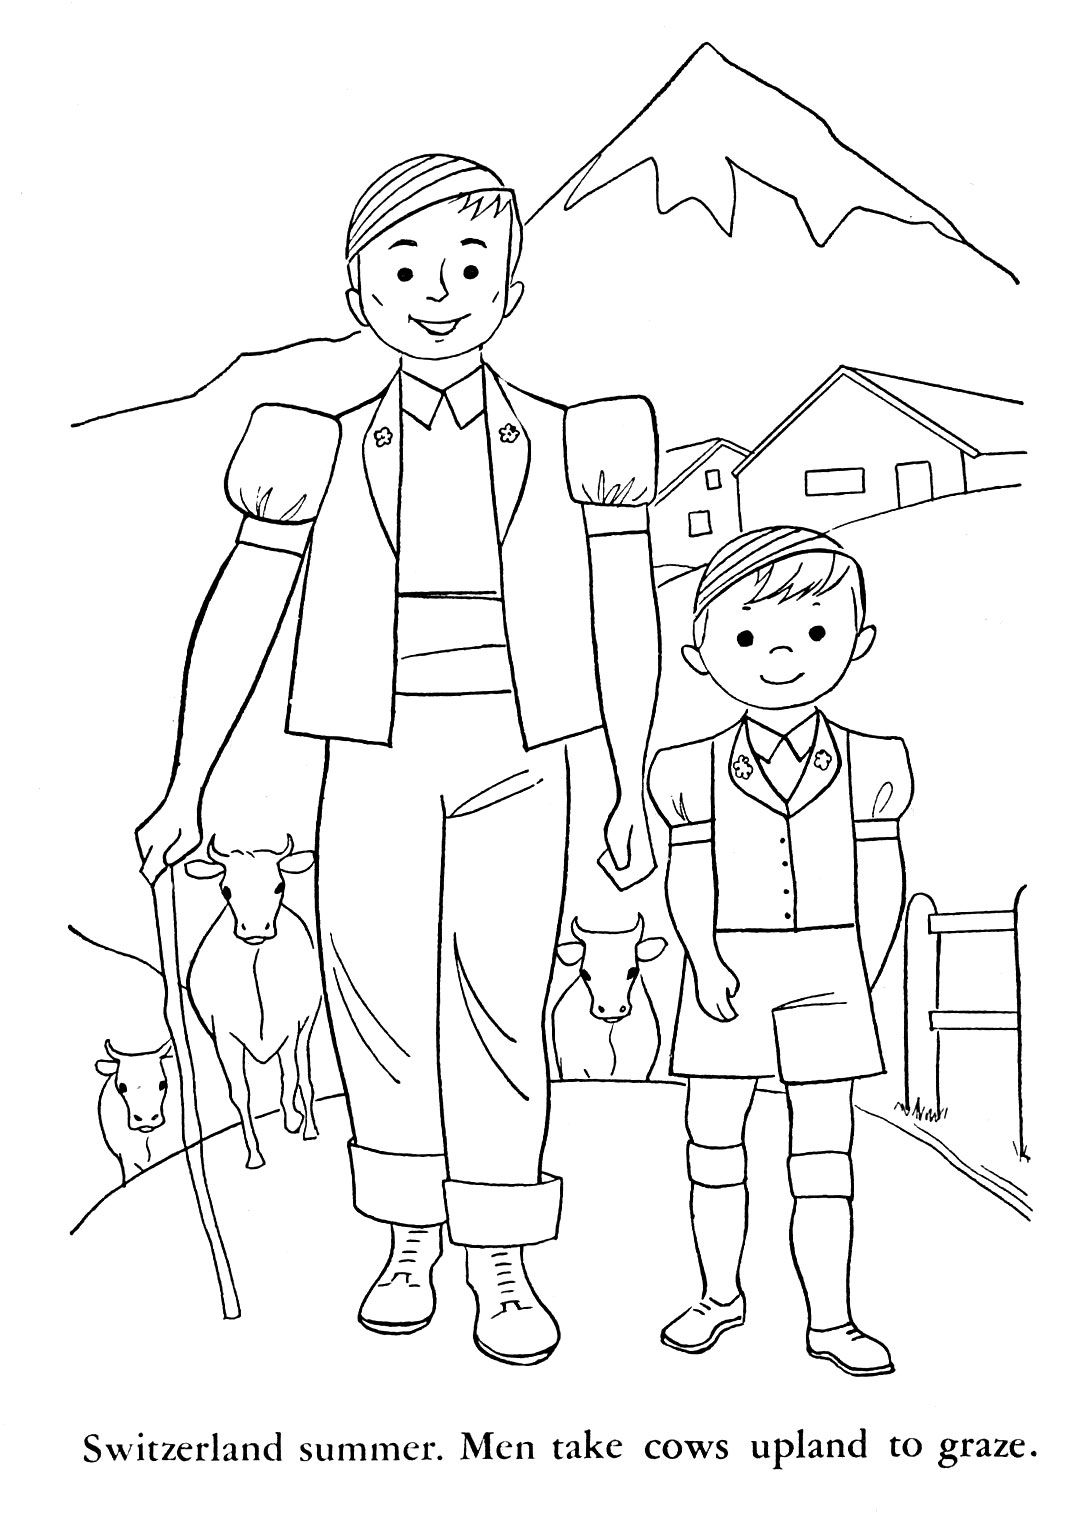 switzerland coloring pages for kids | Children of Other Lands, 1954 ...